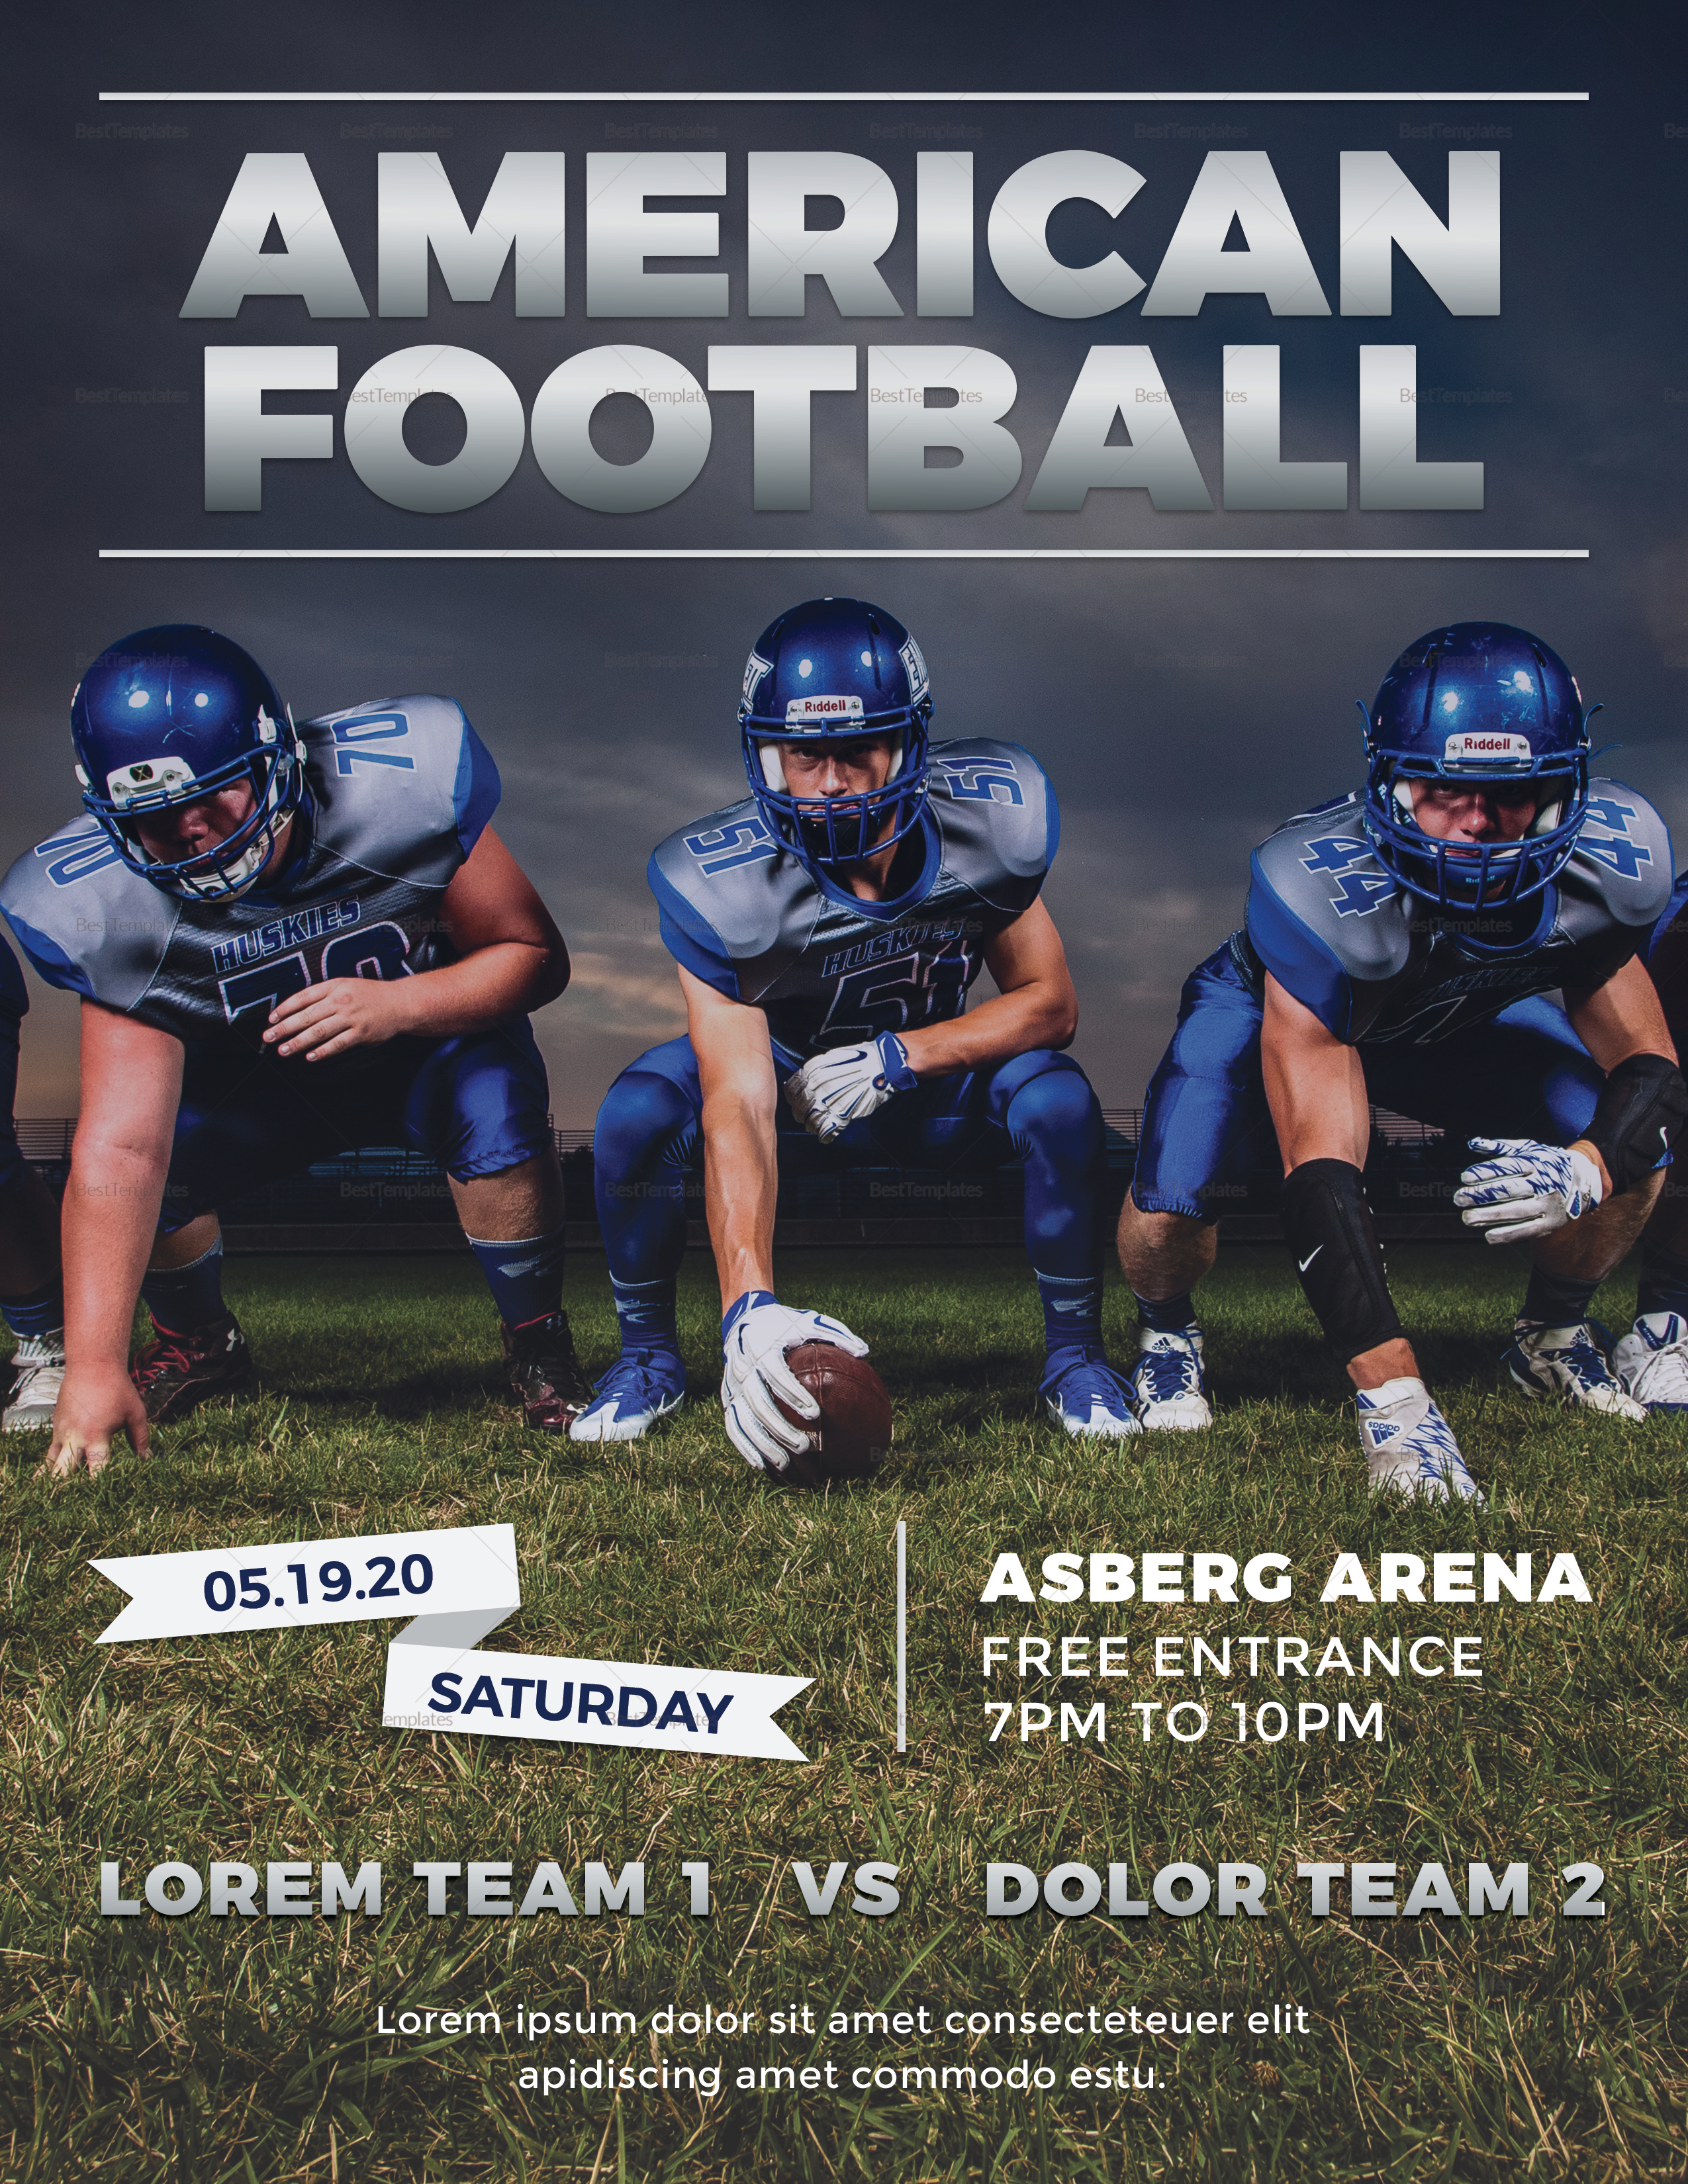 american football flyer design template in psd word publisher